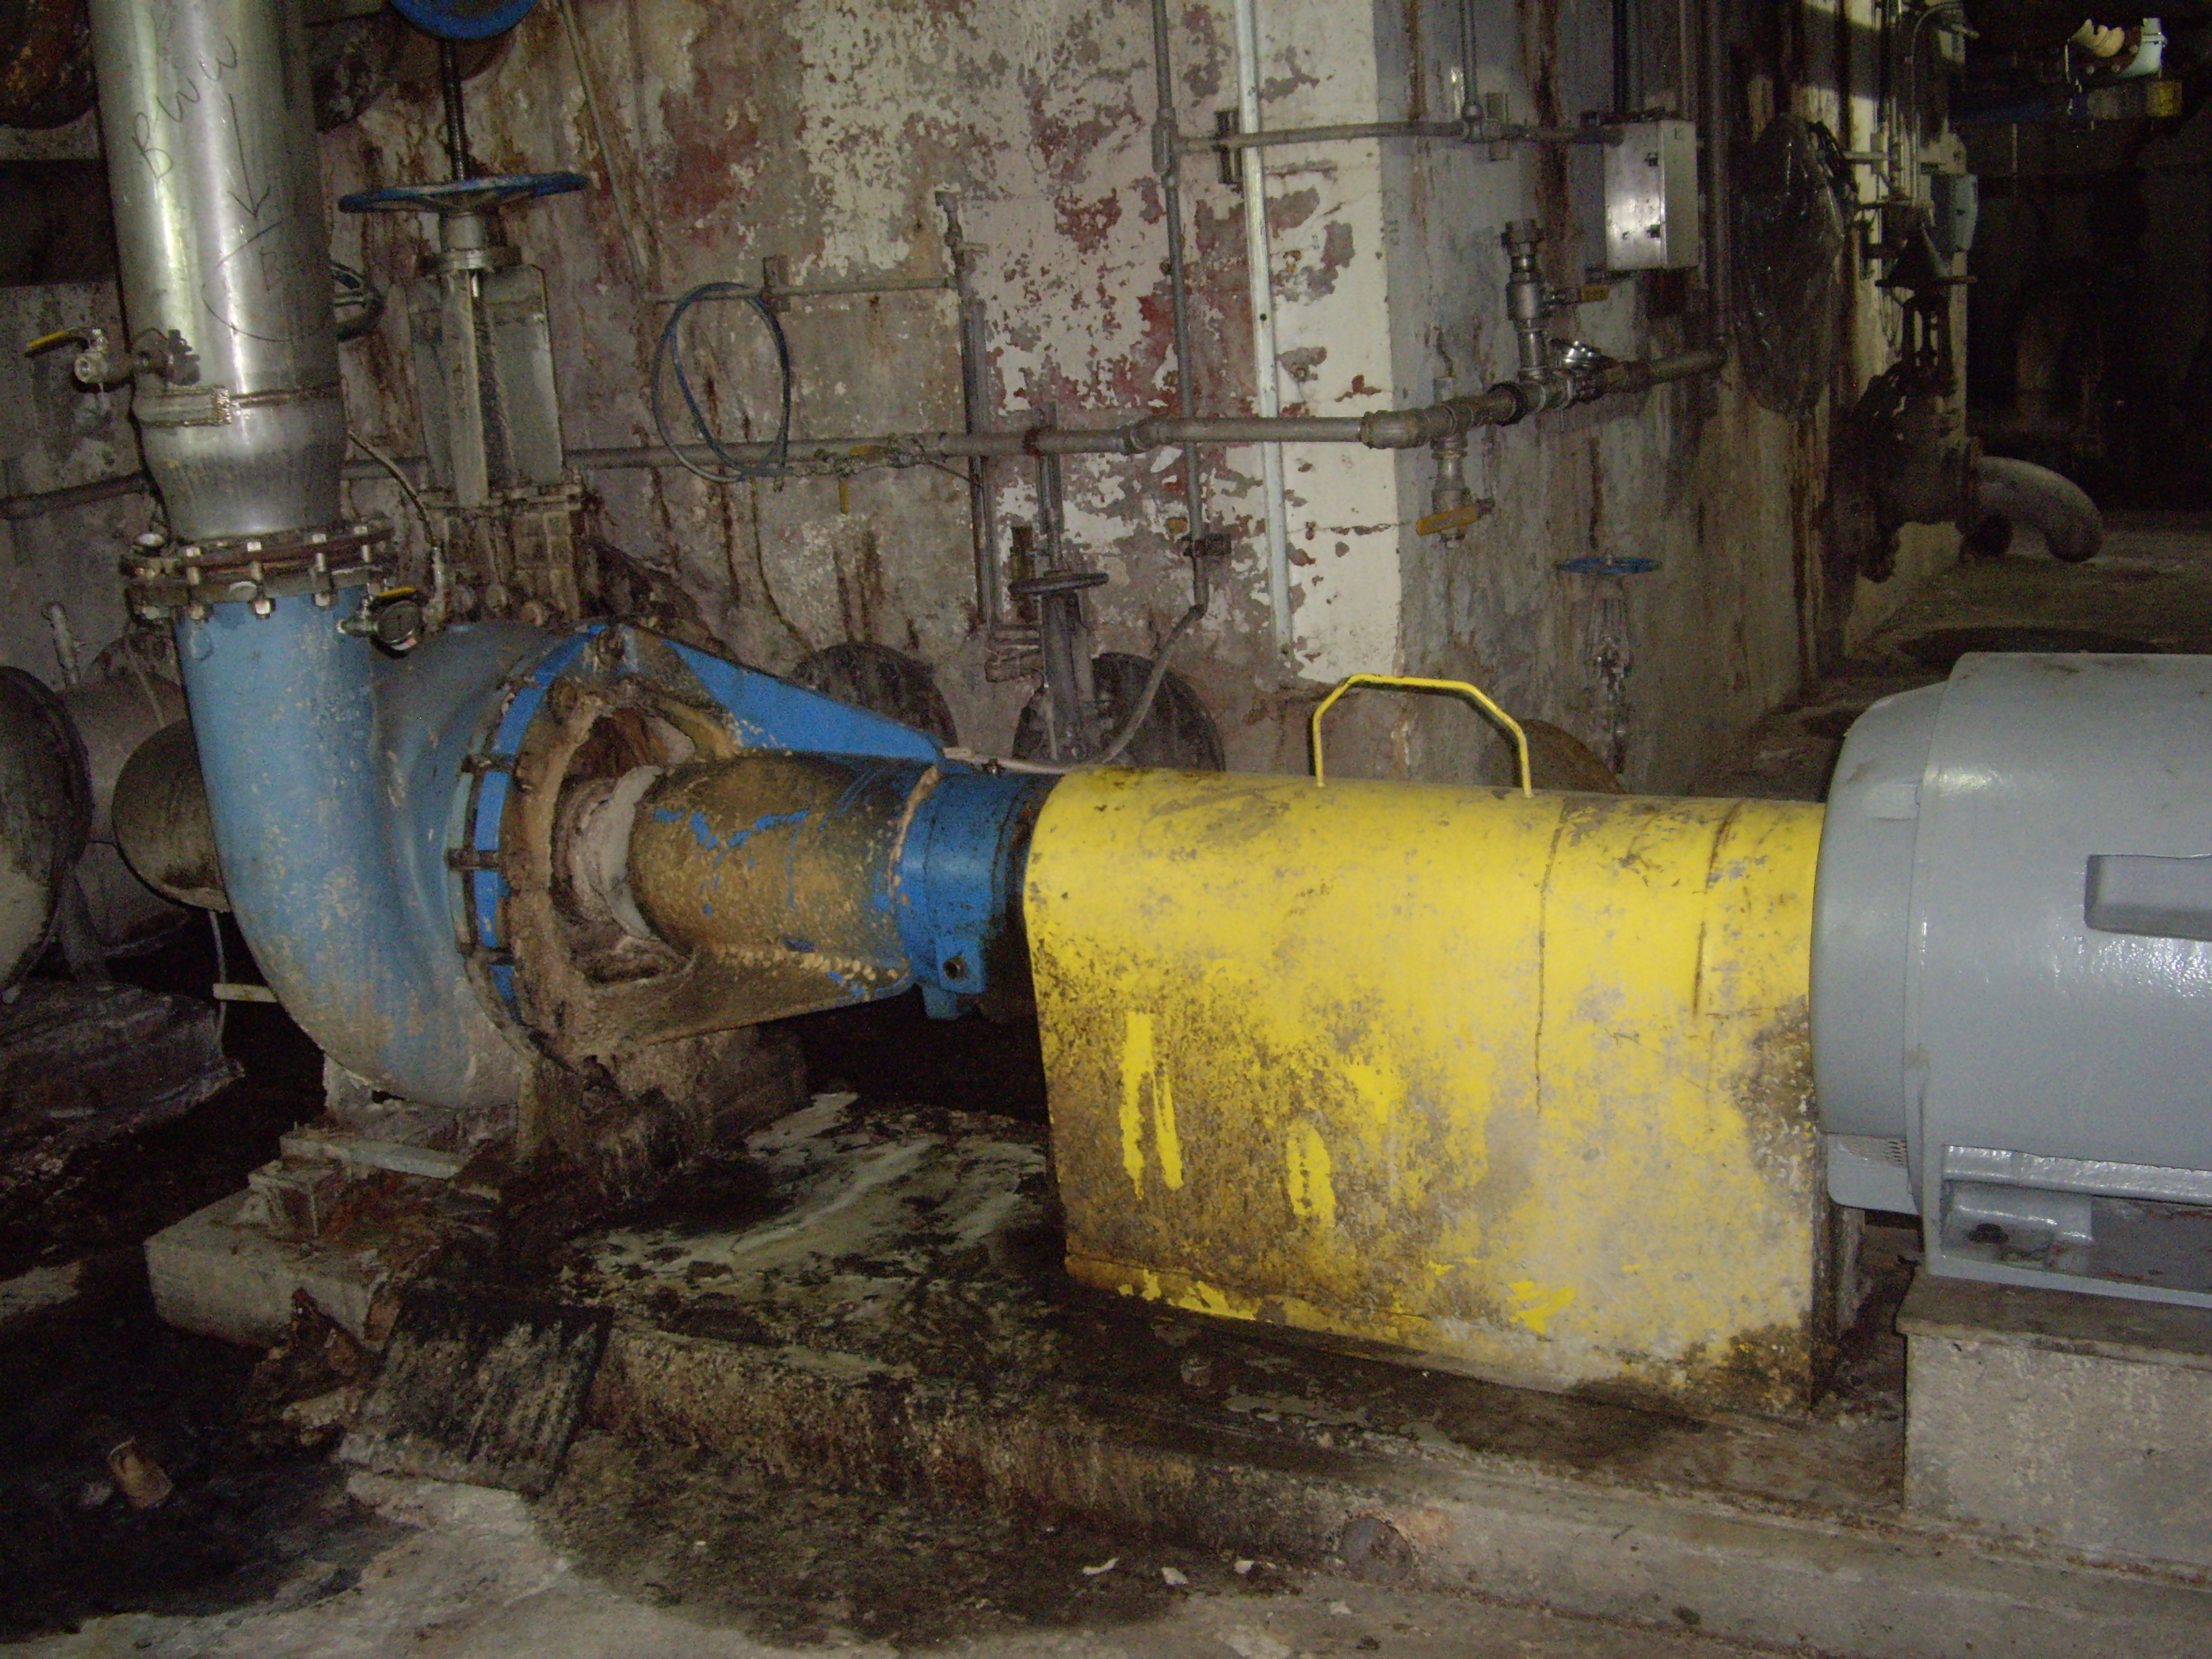 Oversized pump with a failed motor